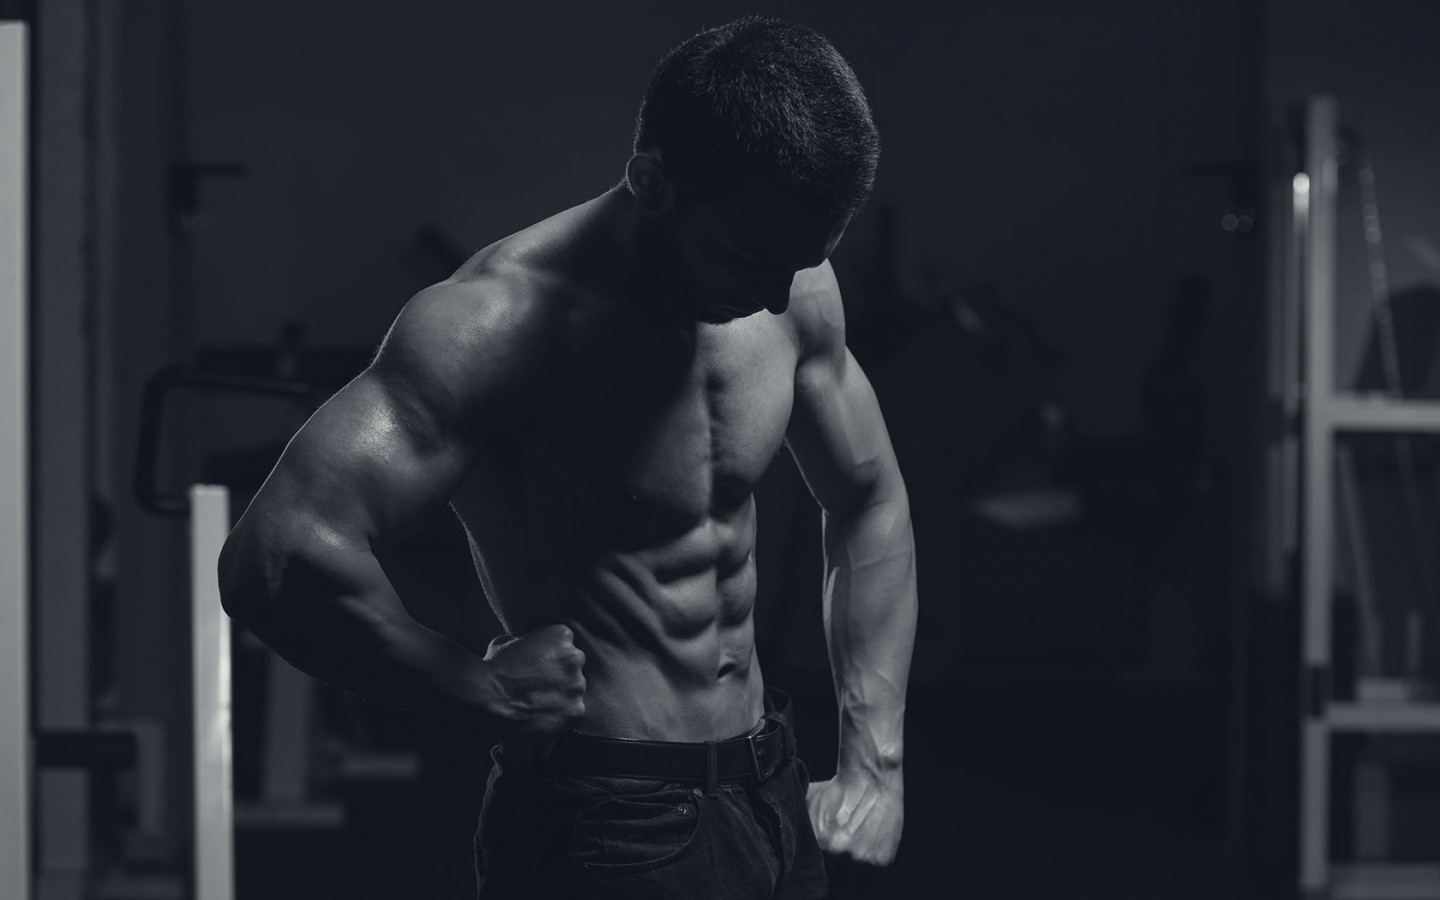 How to Build Muscle - The Definitive Guide to Getting Bigger & Stronger